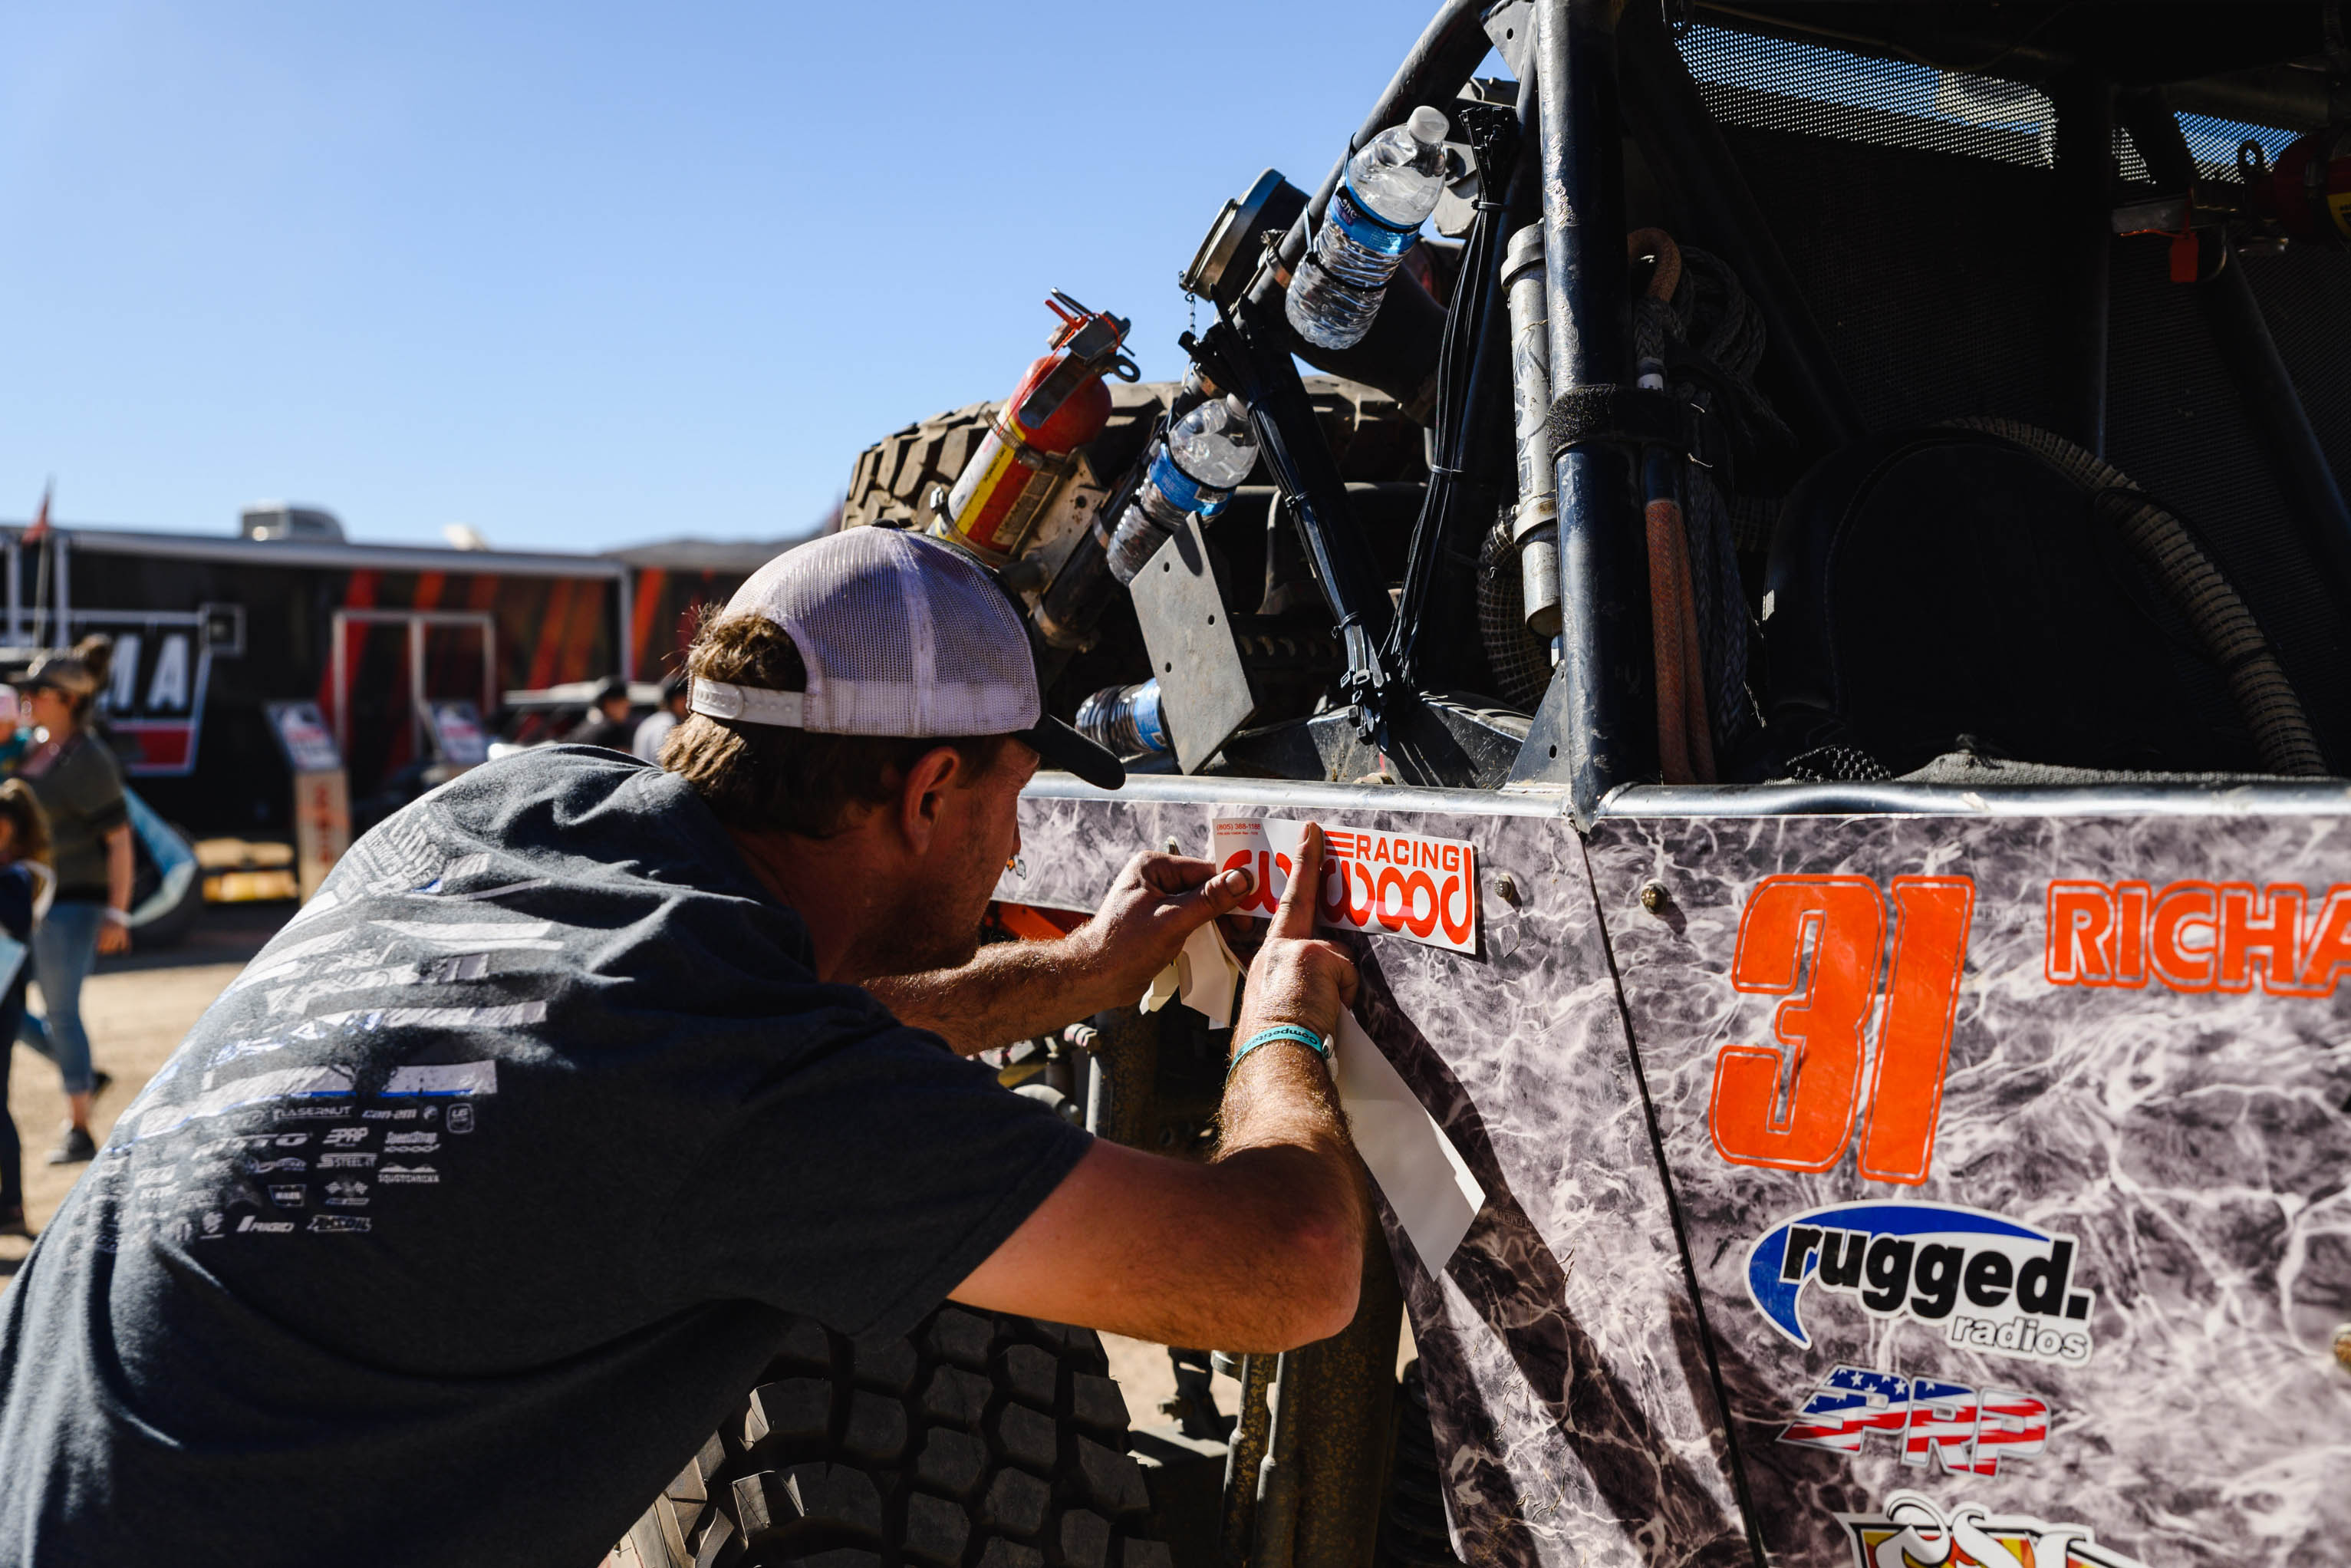 King of Hammer contestent applying Wilwood decal